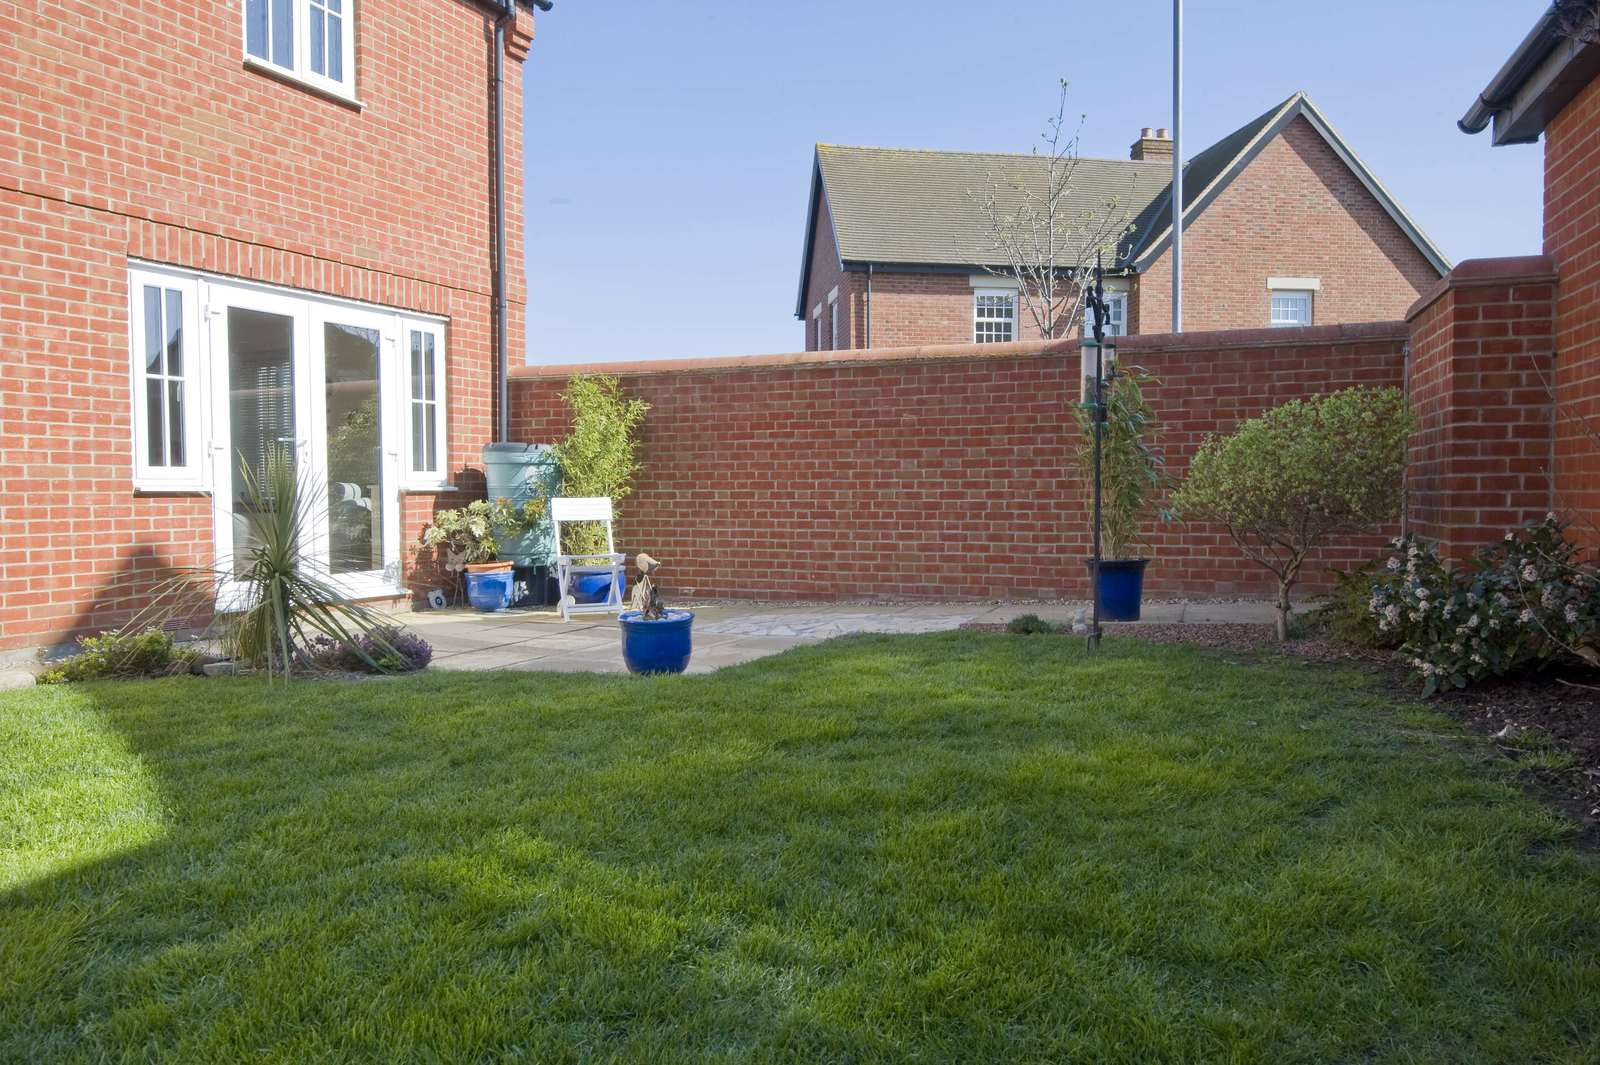 3 bed house for sale in Woodpecker Close, Great Barford  - Property Image 16